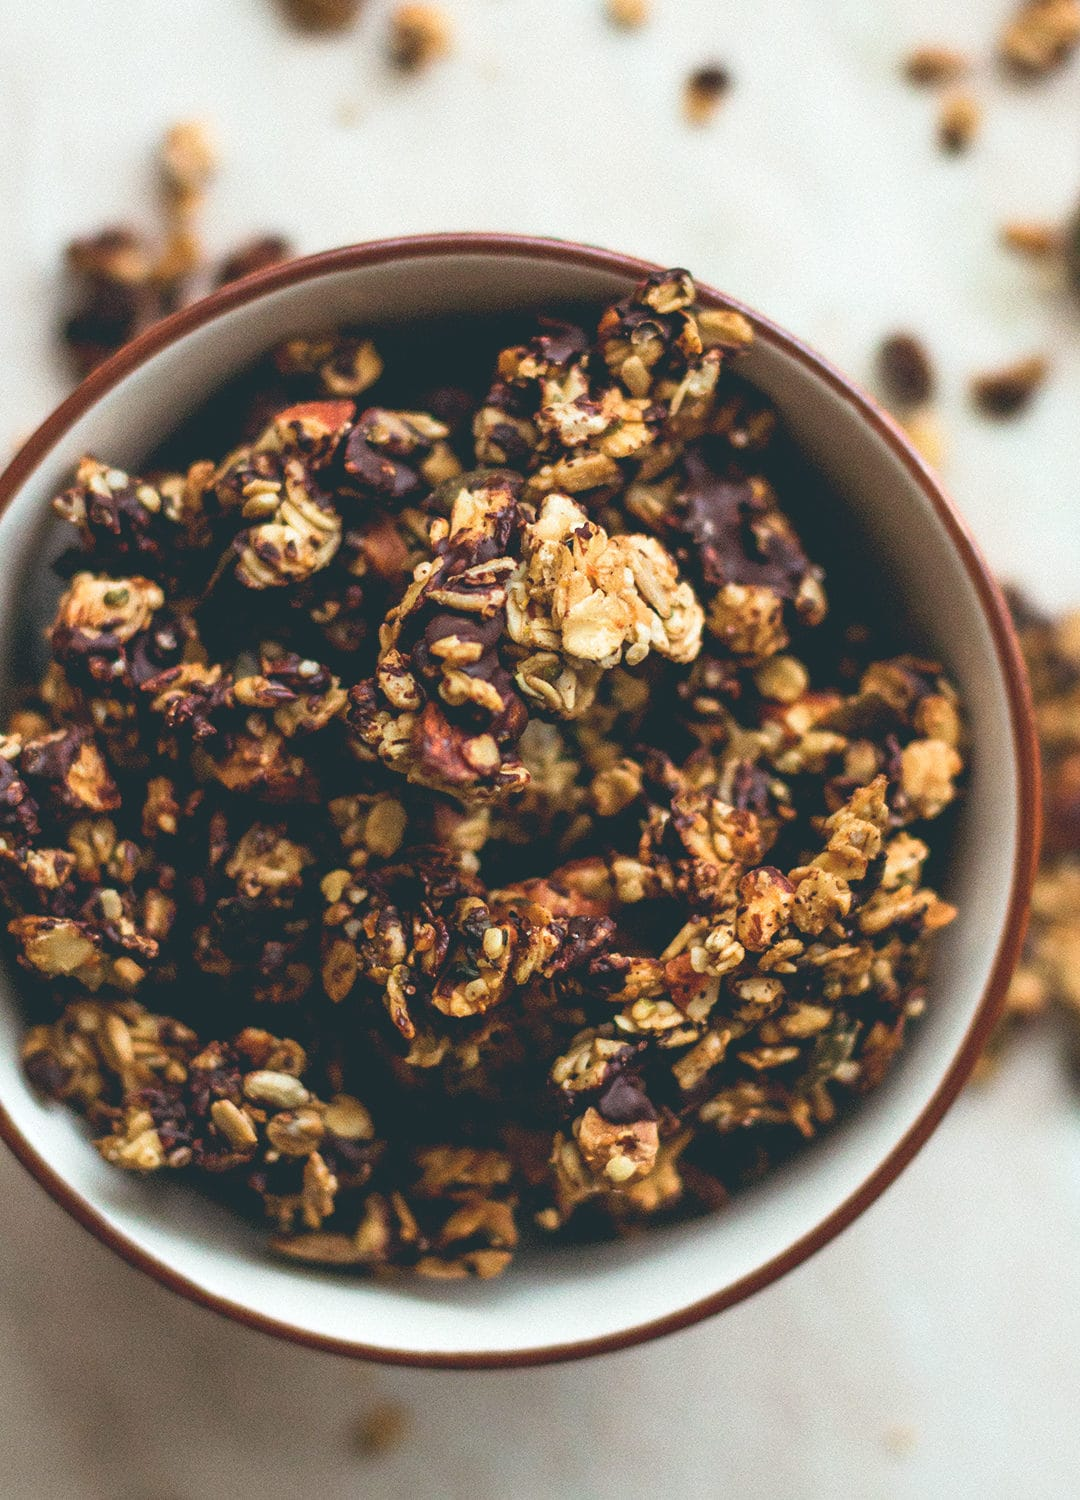 Orange Zest Granola with Dark Chocolate - delicious sweet zesty granola with melted cacao paste on top to create the best dark chocolate & orange flavor. Gluten-free, vegan, and sugar-free! You'll LOVE this granola! | thehealthfulideas.com